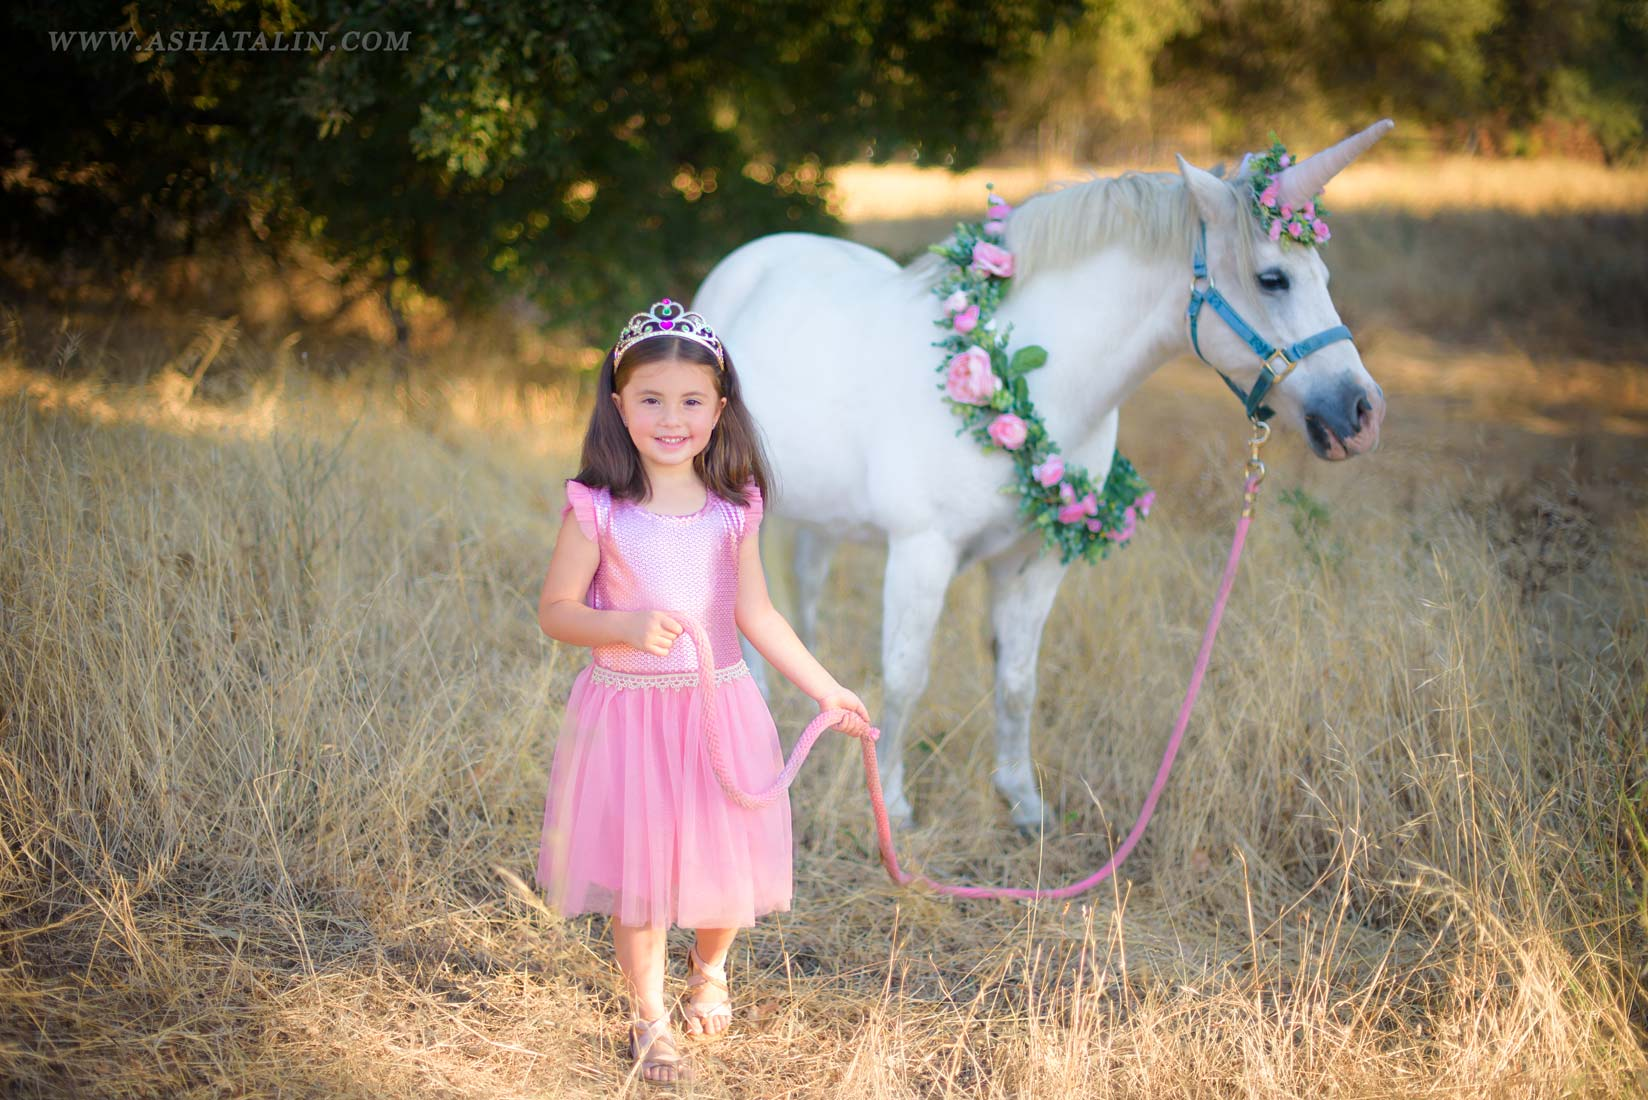 Photo Session With a Pony Unicorn